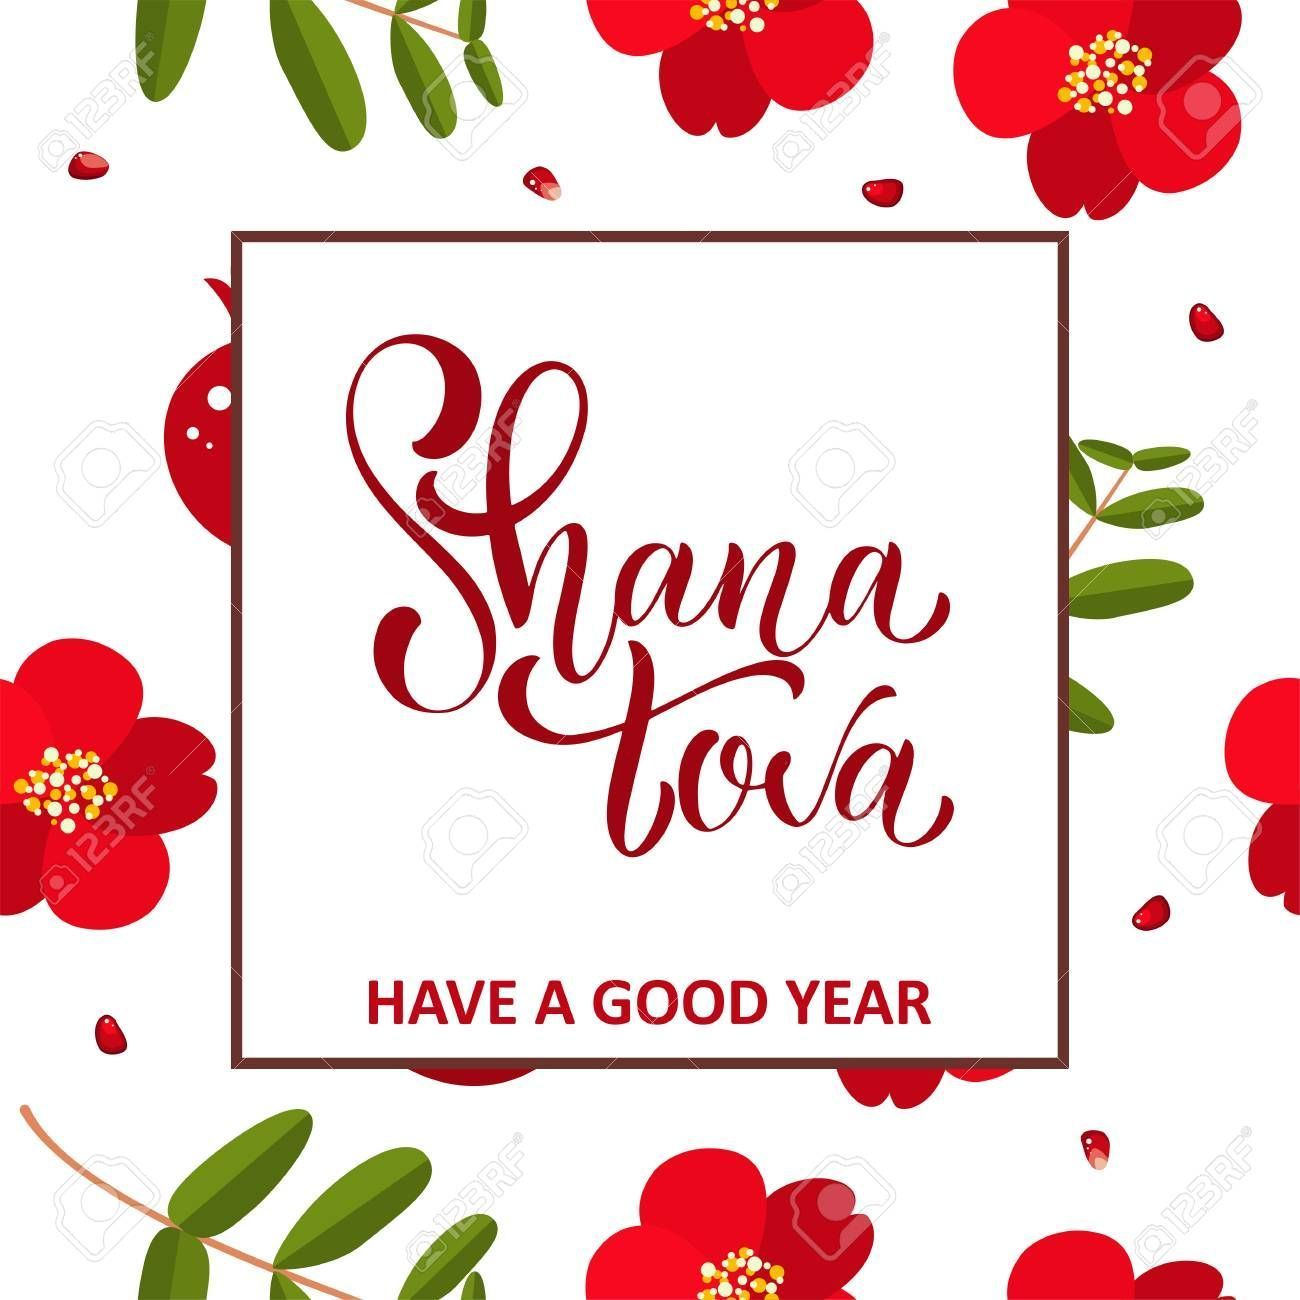 Shana Tova calligraphy text for Jewish New Year. Blessing of Happy new year. Elements for invitations, posters, greeting cards. , #AD, #Jewish, #Year, #Blessing, #text, #Shana #shanatovacards Shana Tova calligraphy text for Jewish New Year. Blessing of Happy new year. Elements for invitations, posters, greeting cards. , #AD, #Jewish, #Year, #Blessing, #text, #Shana #shanatovacards Shana Tova calligraphy text for Jewish New Year. Blessing of Happy new year. Elements for invitations, posters, gree #shanatovacards